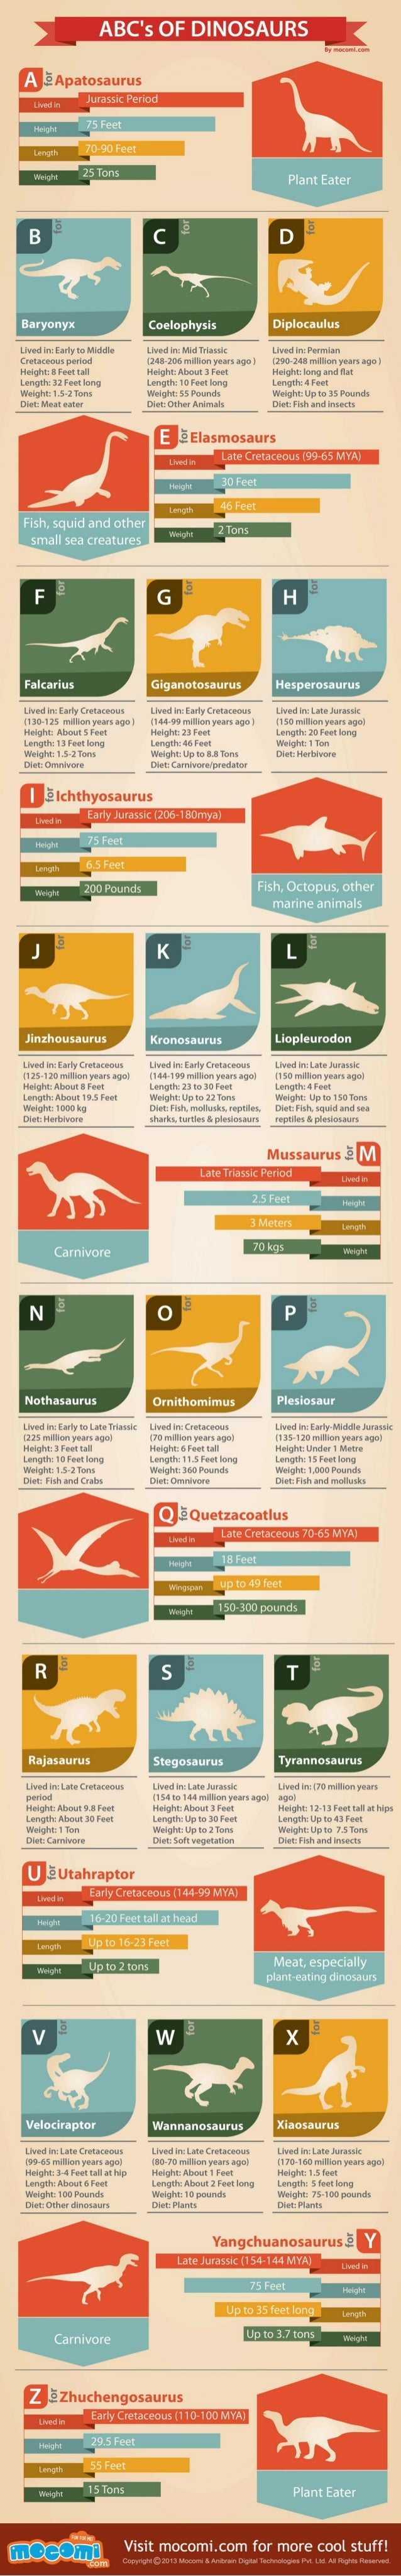 A to Z of Dinosaurs Facts - Mocomi com